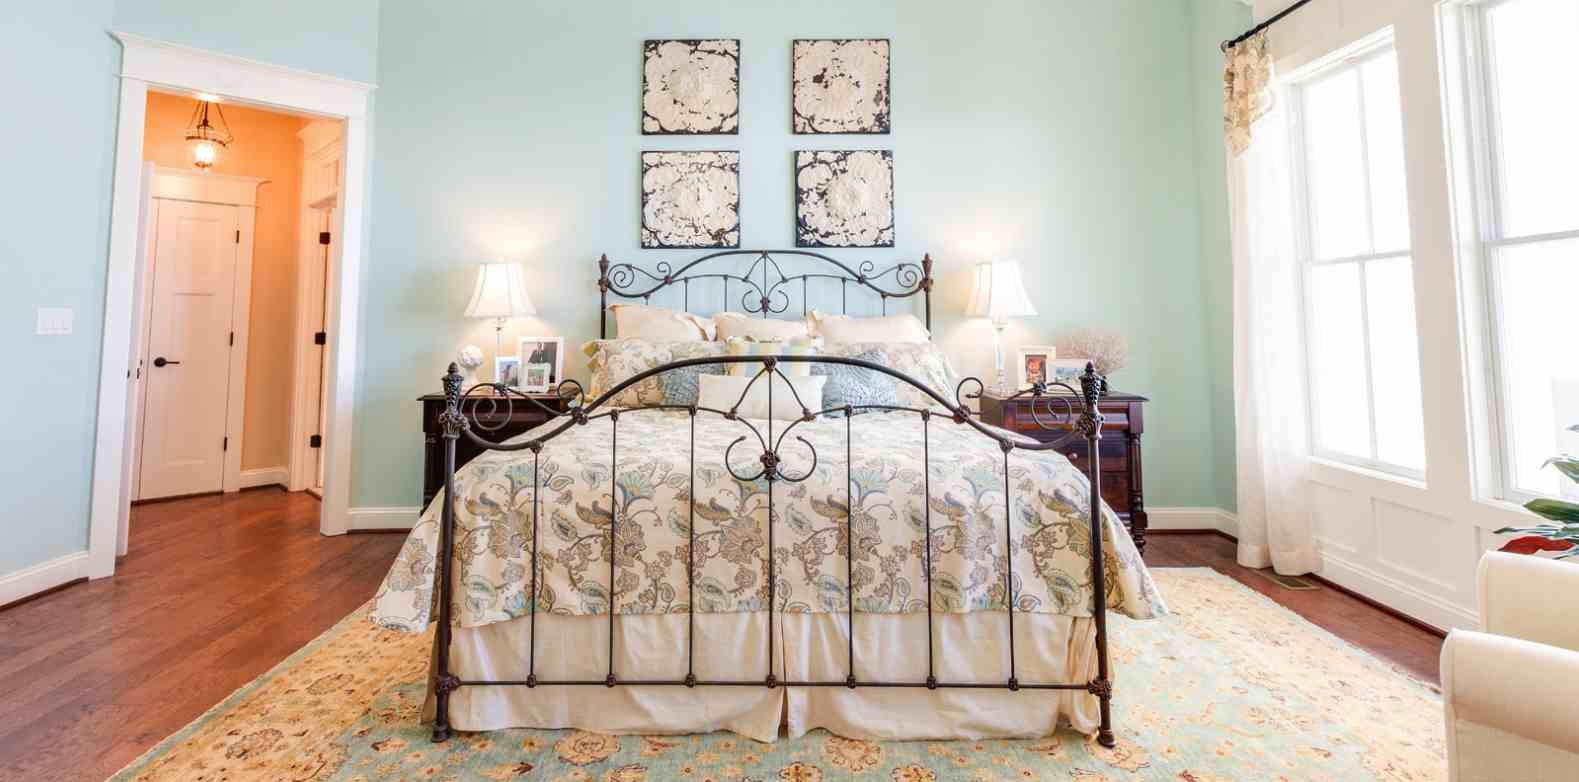 8 reasons to make your bed in the morning bedroom images bedrooms and room ideas - Seven reasons to make the bed every morning ...